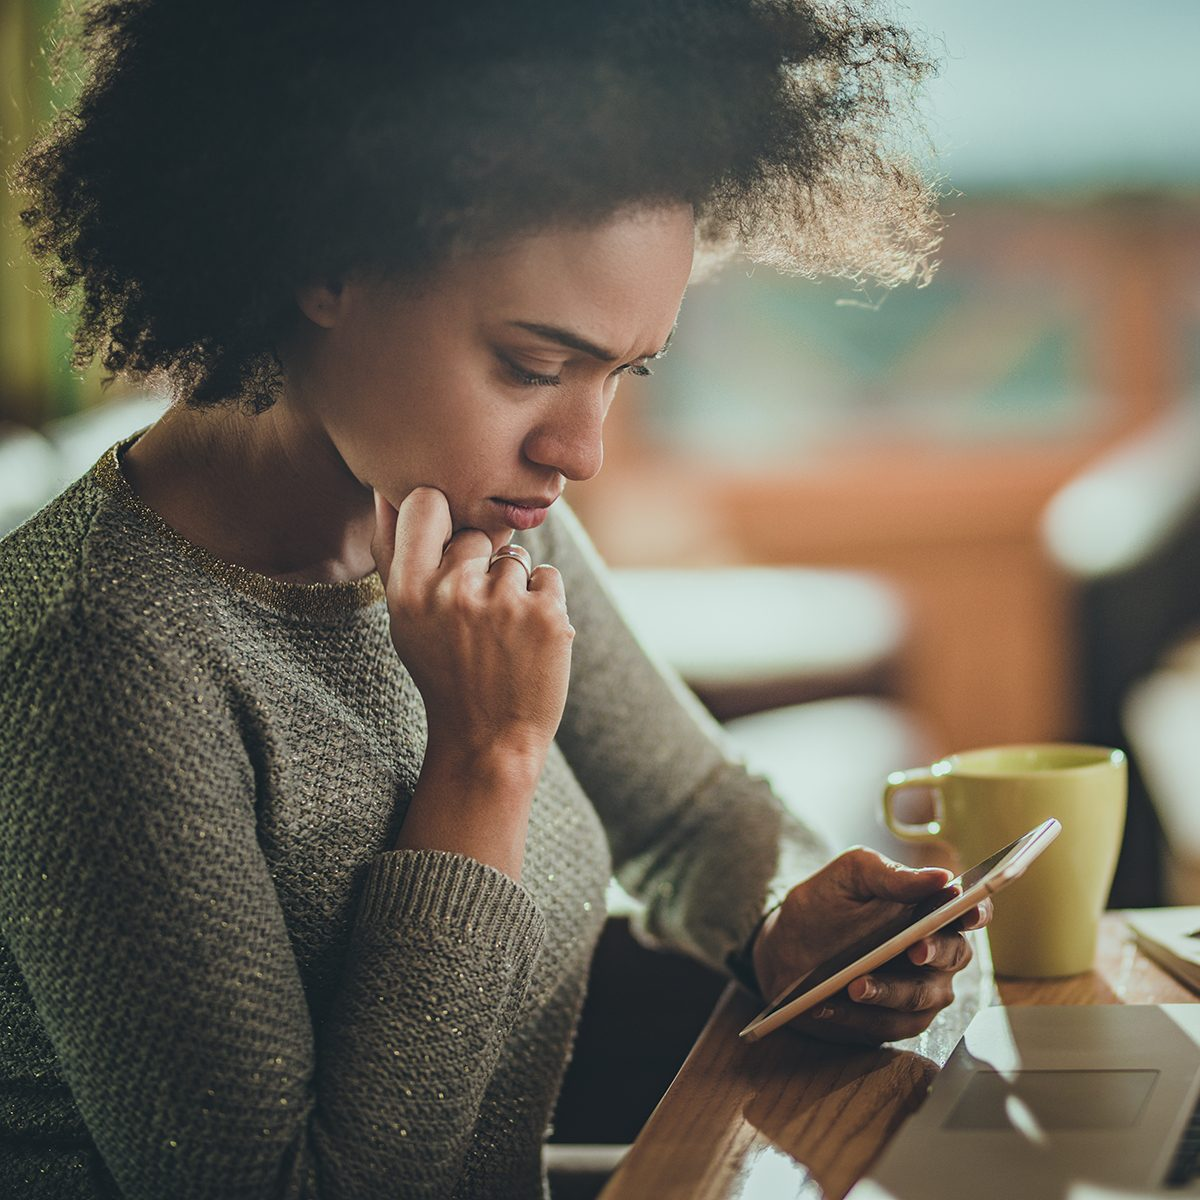 Young black woman reading a problematic text message on her mobile phone while working at home.